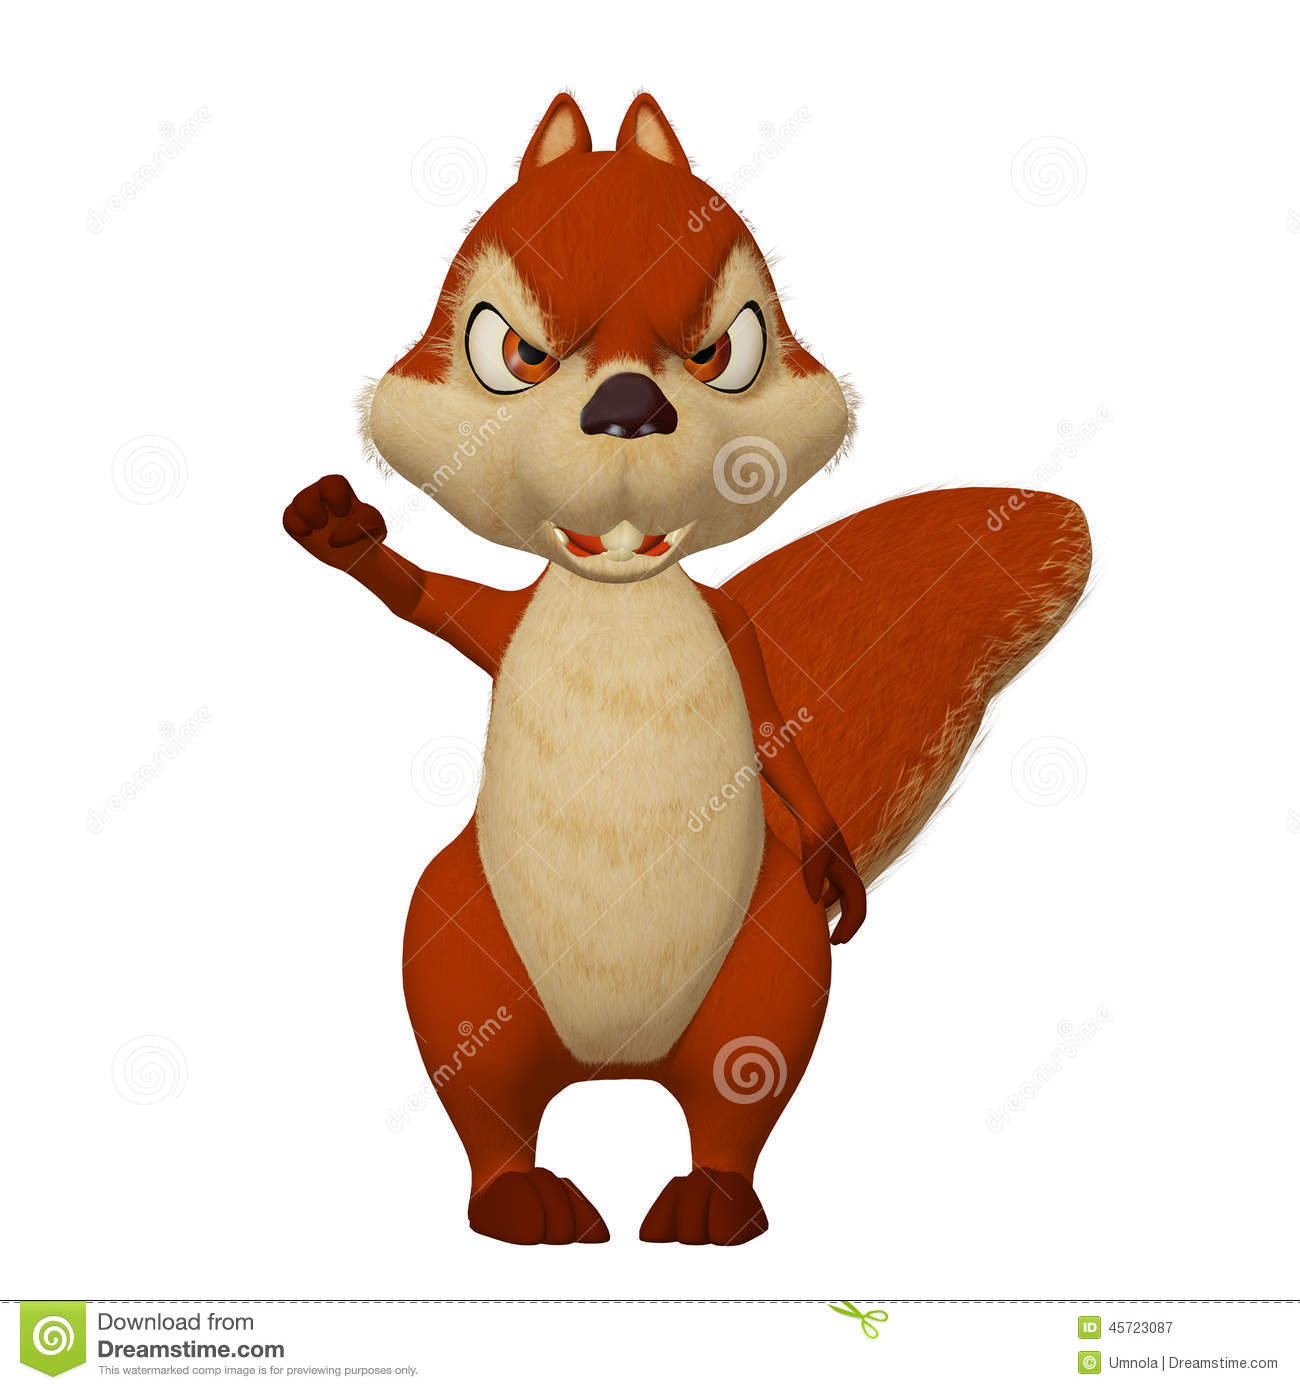 Angry Cartoon Squirrel Stock Illustration - Image: 45723087